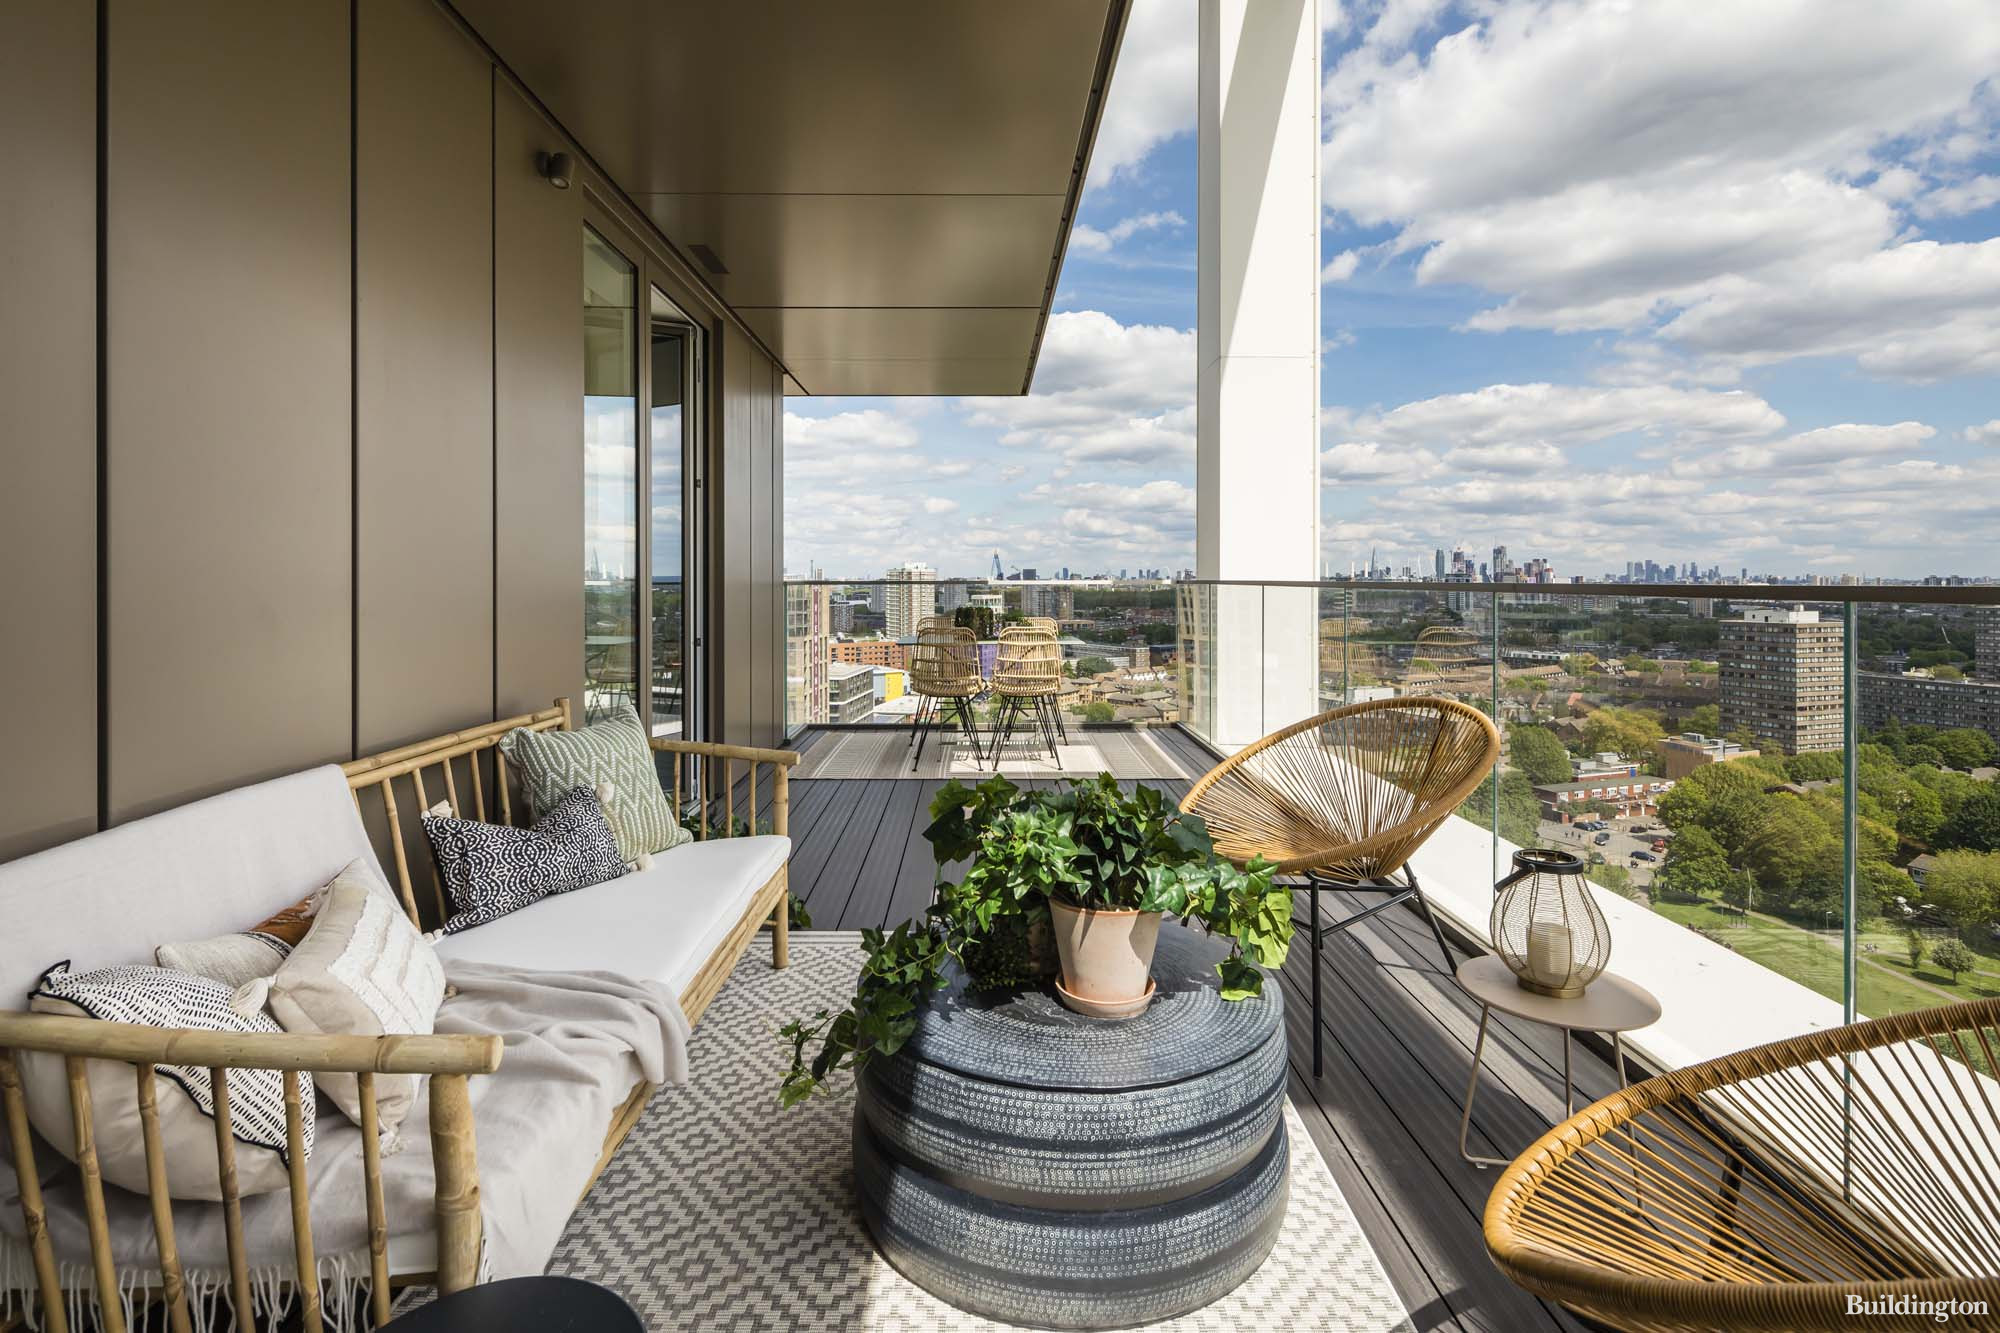 Al fresco dining area on the terrace, perfect for entertaining friends. The show home at The Terrace Collection in Coda Avanton Battersea designed by Gordon Duff & Linton.